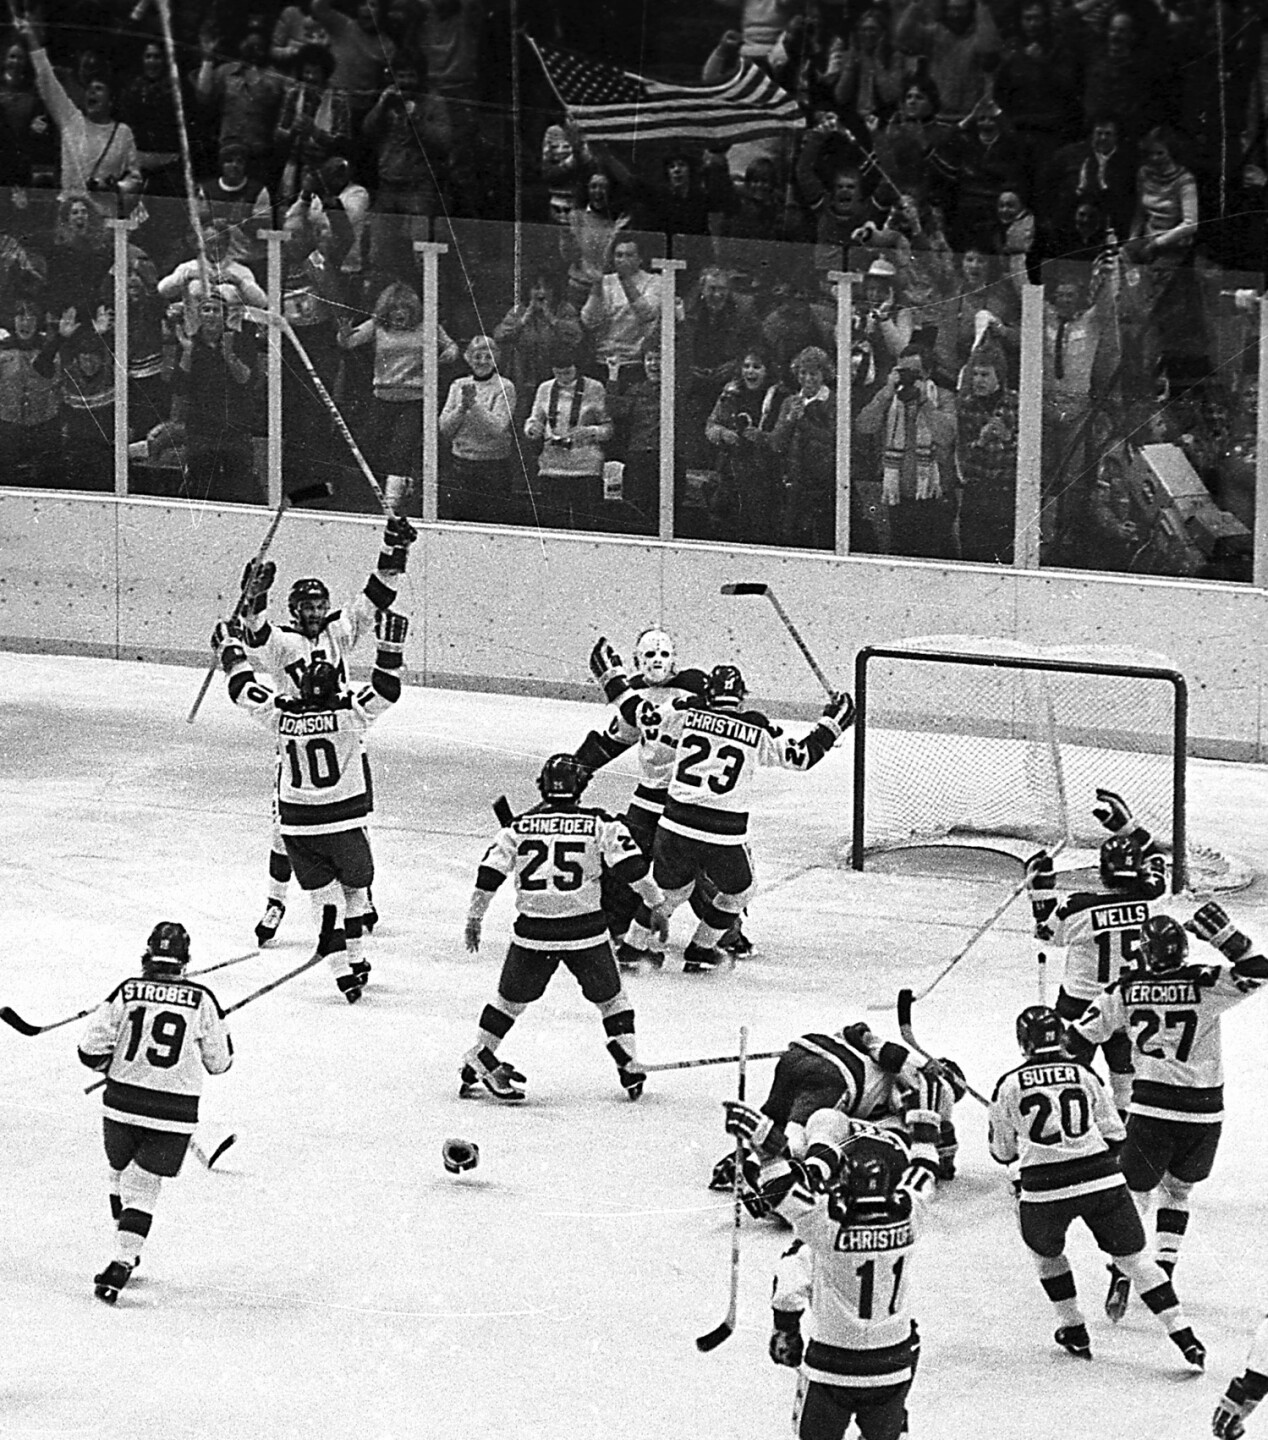 In this Feb. 22, 1980, file photo, the U.S. men's ice hockey team rushes toward goalie Jim Craig after their 4-3 upset win over the Soviet Union in the semifinals of the Winter Olympic Games in Lake Placid, N.Y. (AP Photo/File)